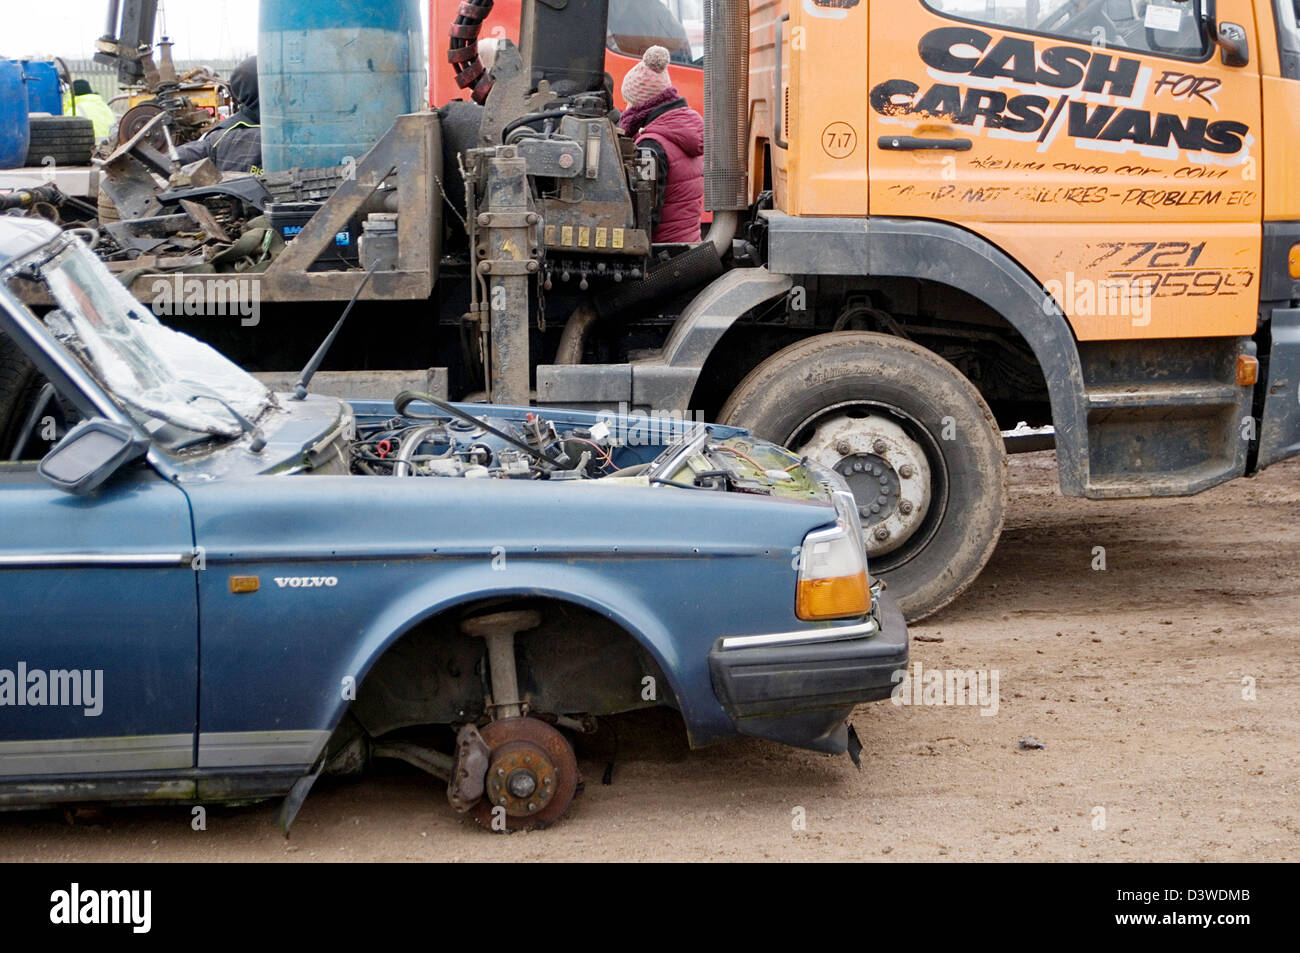 Scrap Dealer Stock Photos & Scrap Dealer Stock Images - Alamy